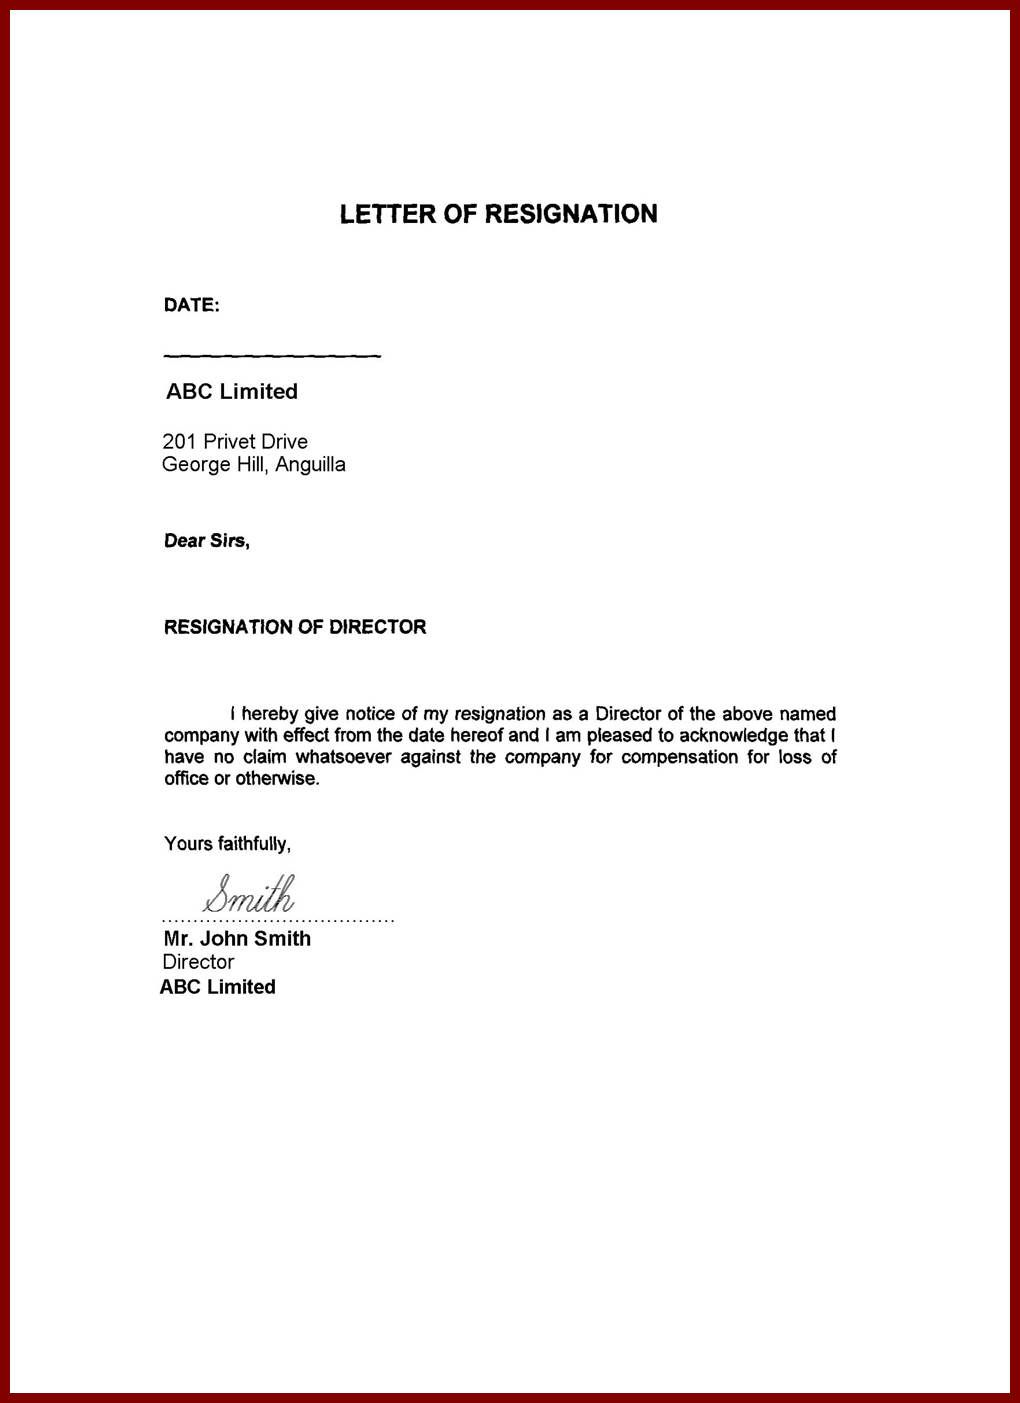 Image result for resignation letter word format family reason 1234 image result for resignation letter word format family reason spiritdancerdesigns Choice Image